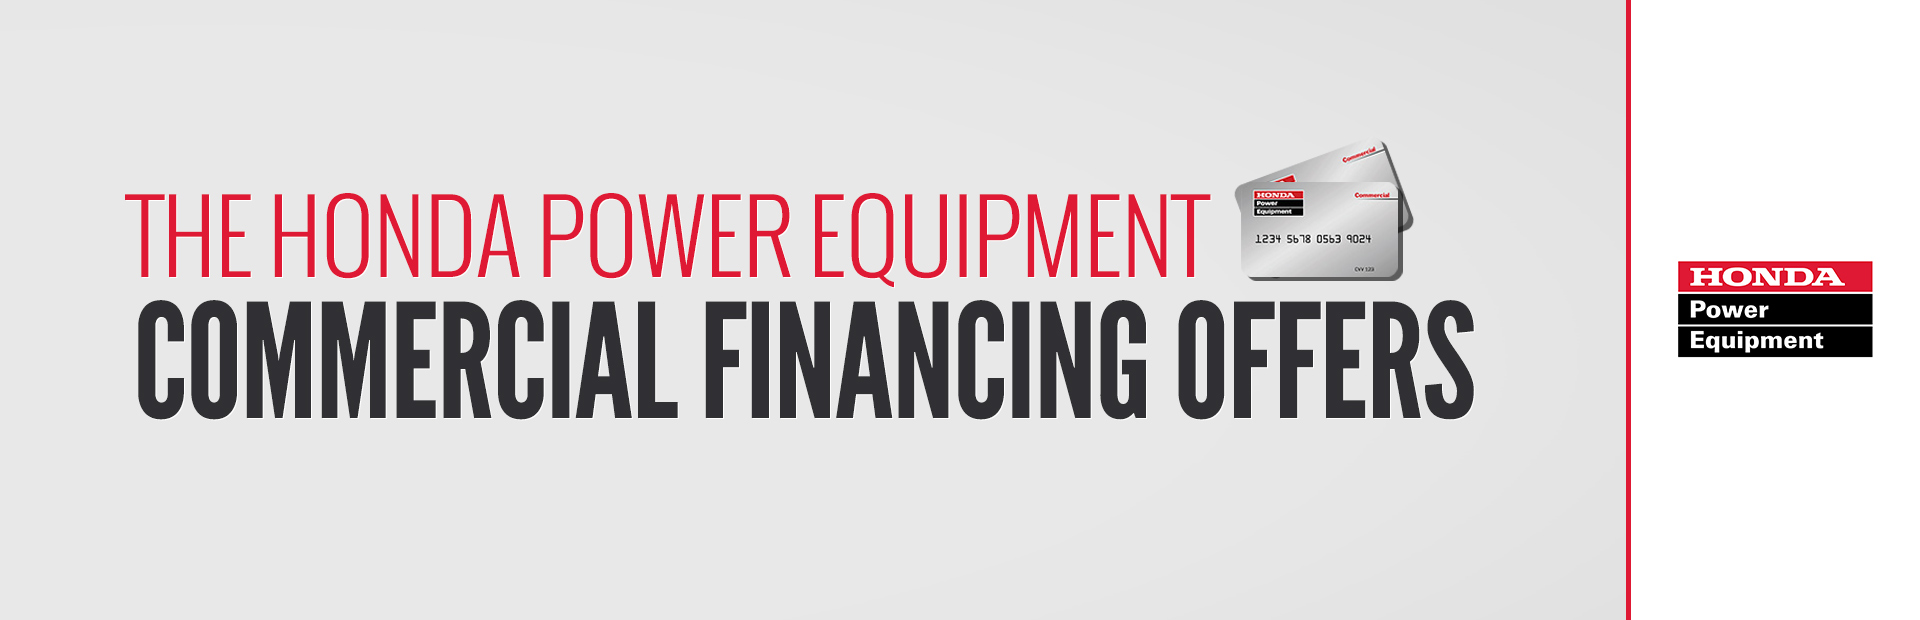 Honda Power Equipment: Commercial Financing Offers